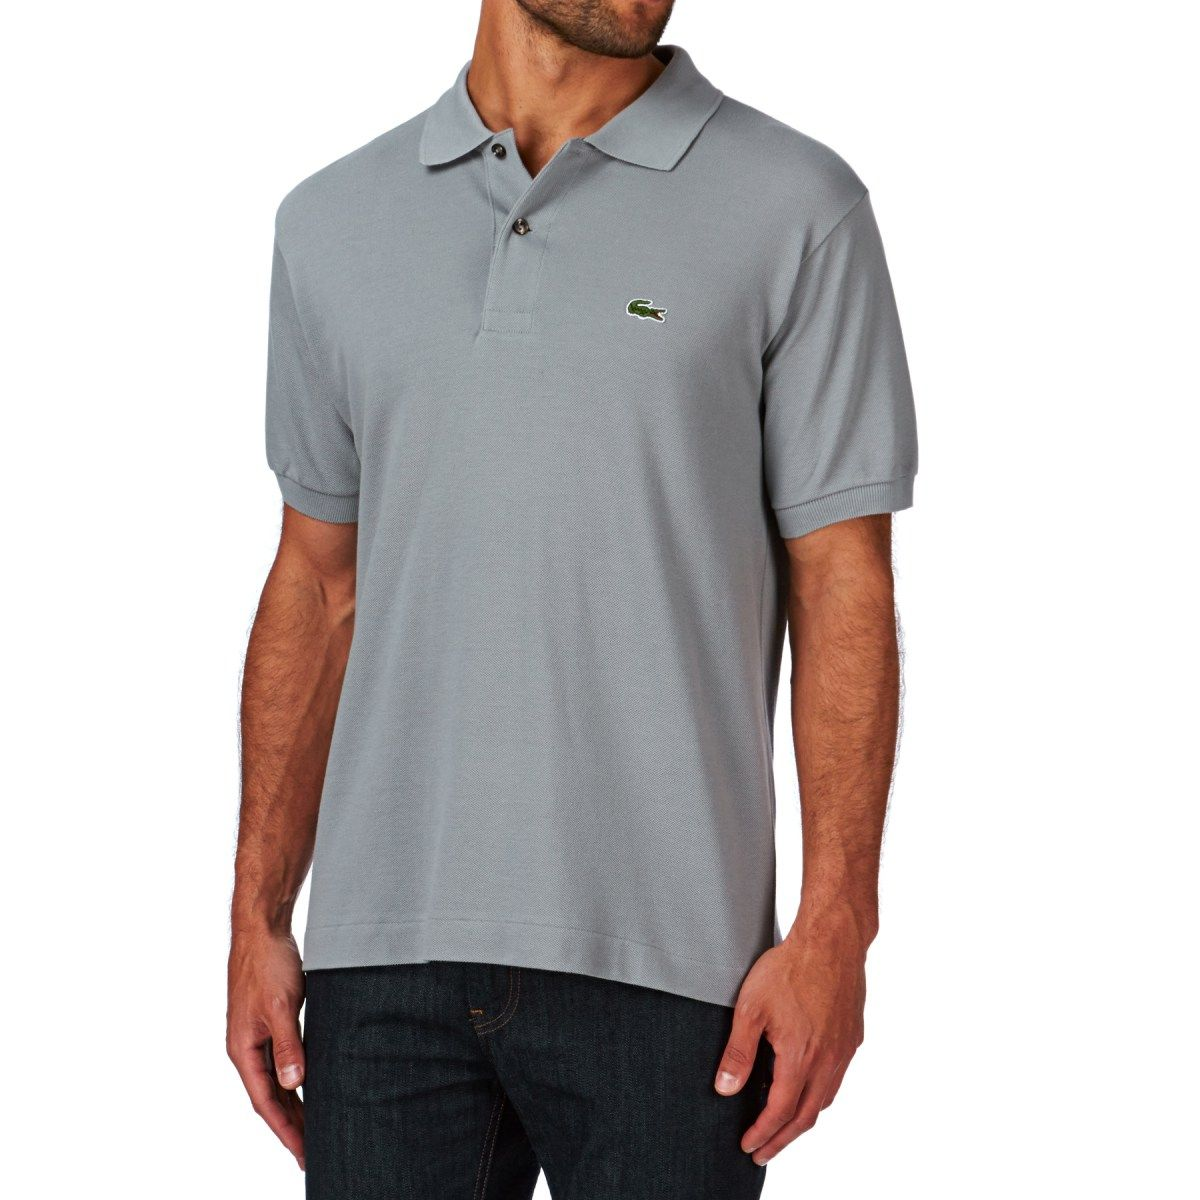 Men's Lacoste Polo Shirts - Lacoste L.12.12 Polo Shirt - Grey